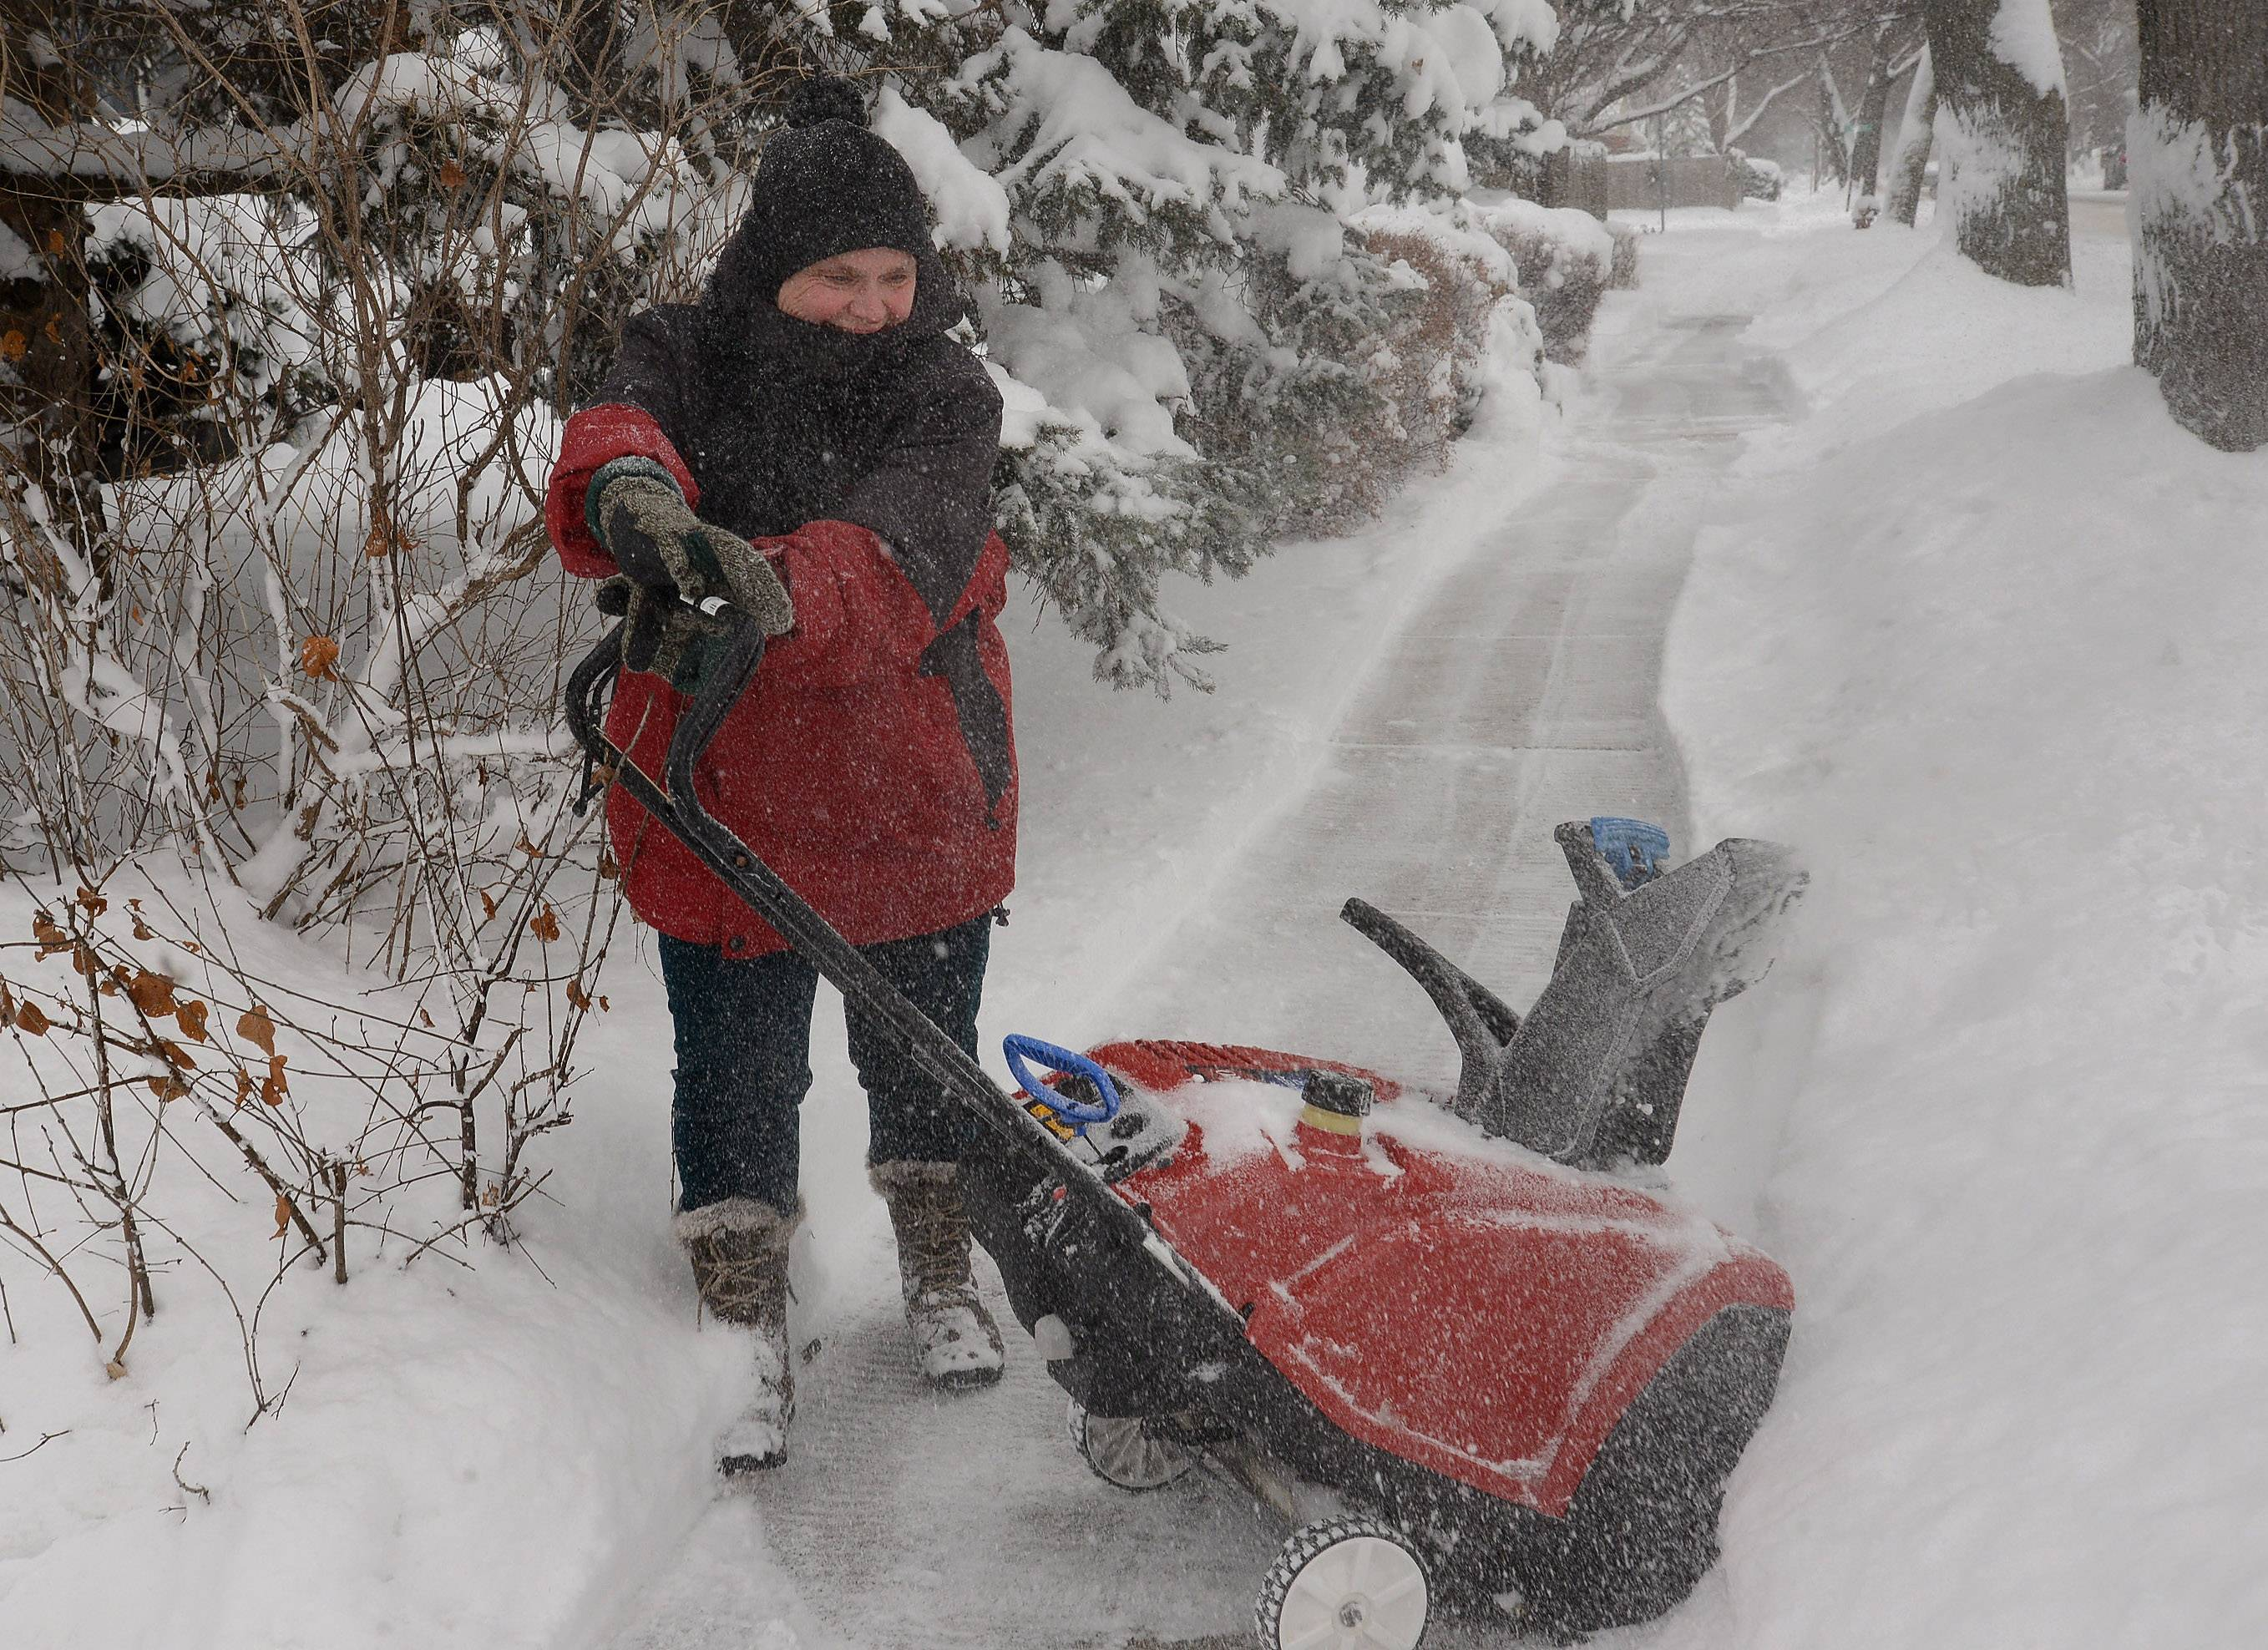 Mary Davis has used her snowblower 5 or 6 times in the last 24 hours on her sidewalk and driveway on Campbell  Street in Arlington Heights.